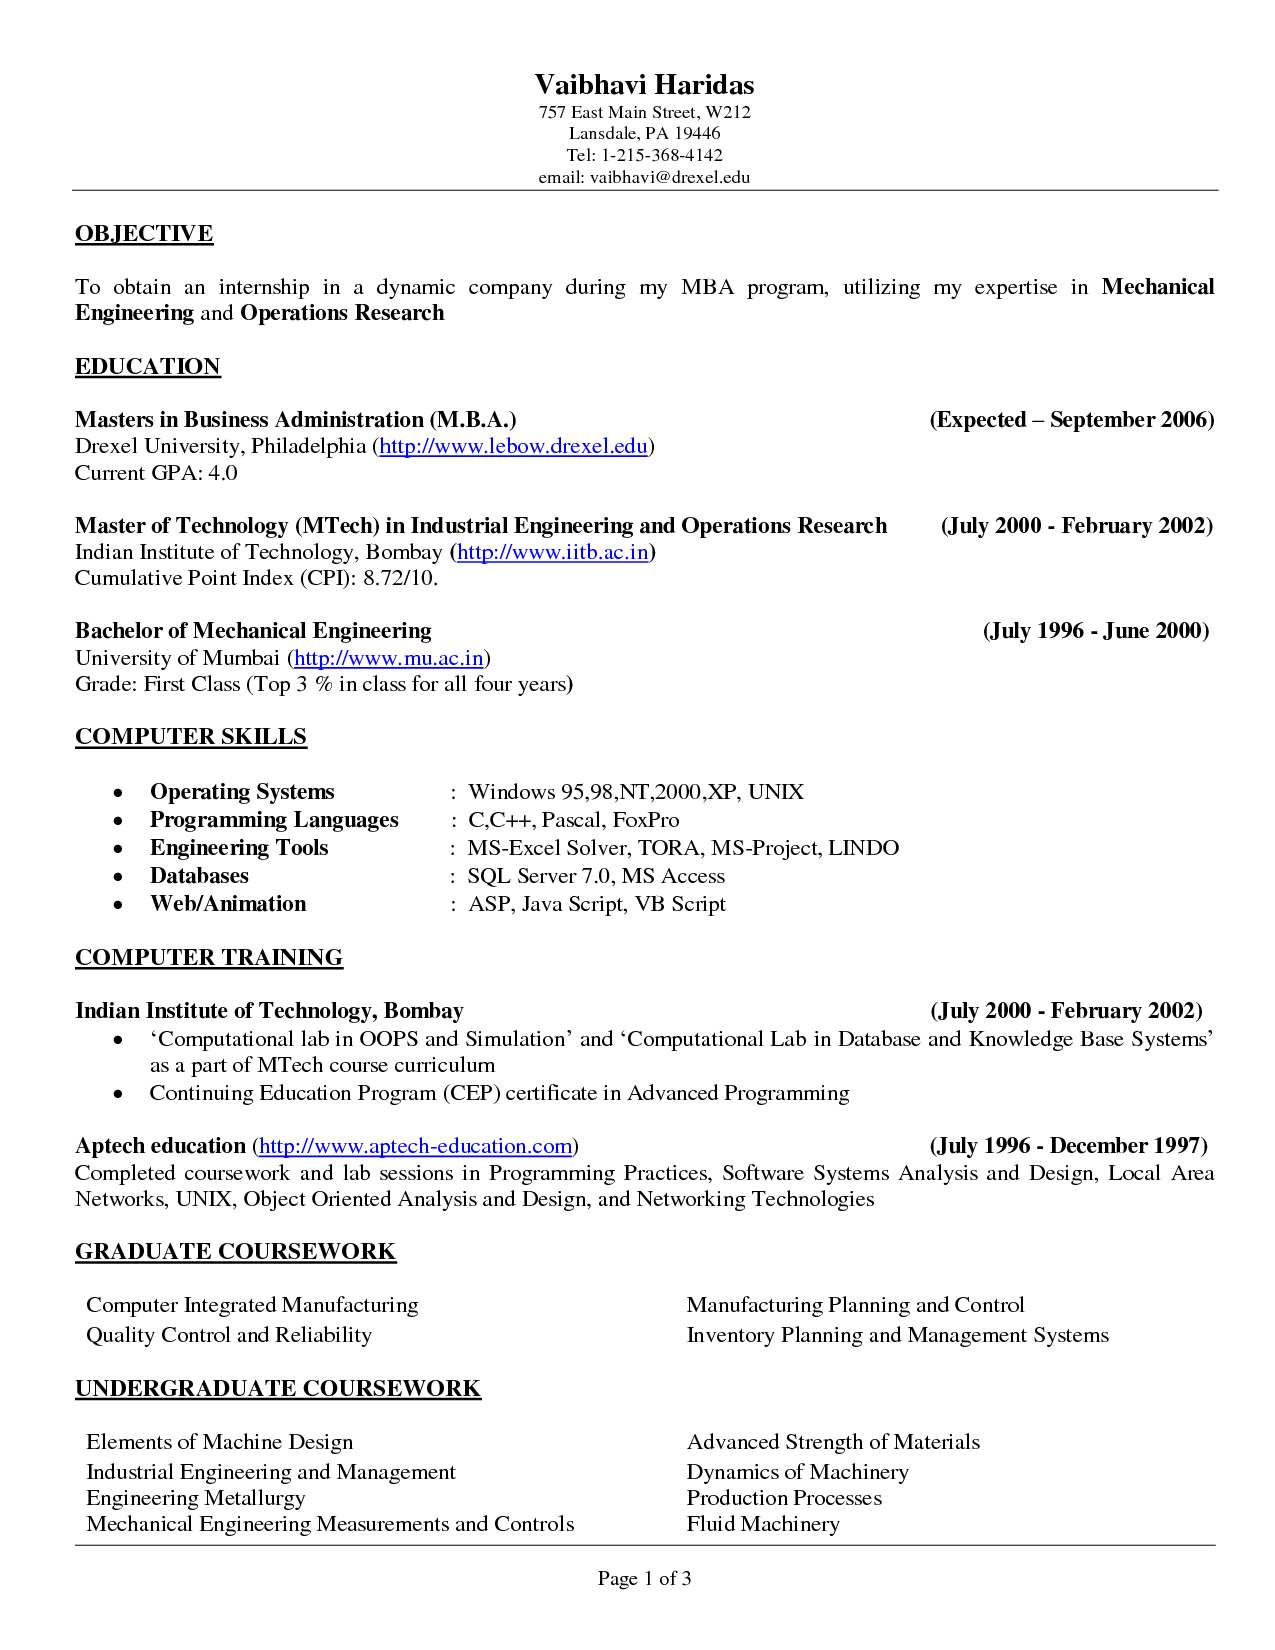 An Objective For A Resume Resume Objective Example Best Templateresume Objective Examples